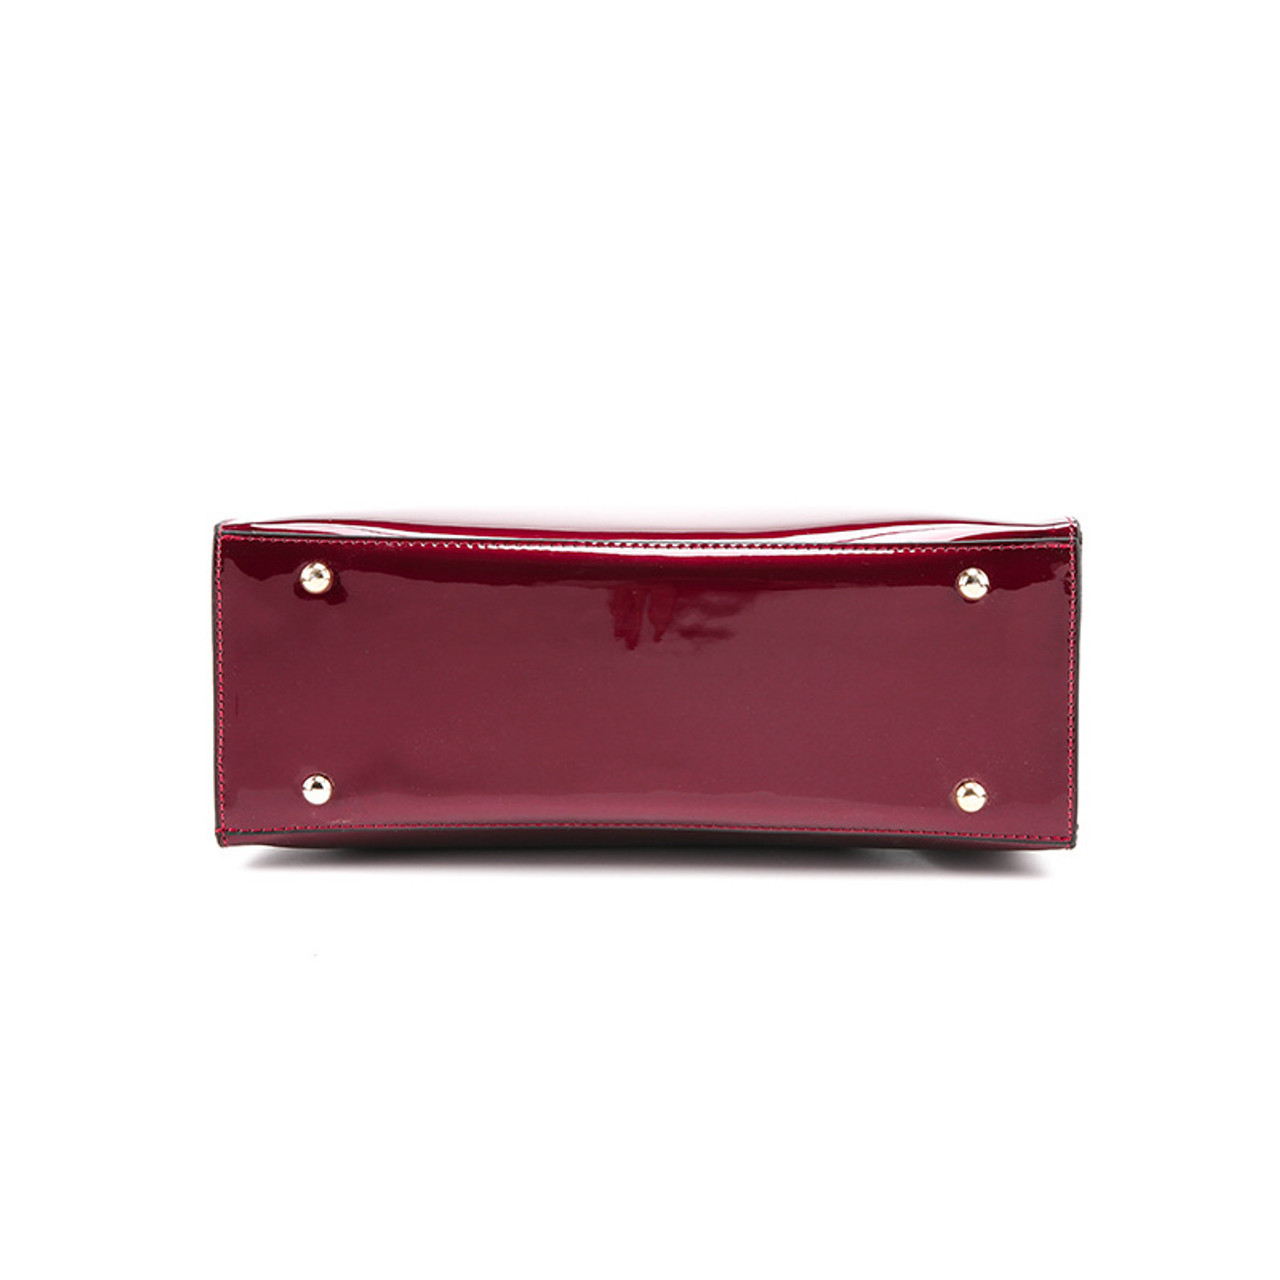 ... Bonsacchic Red Patent Leather Tote Bag Handbags Women Famous Brands  Lady s Lacquered Bag Red Handbag for ... 90f0480594